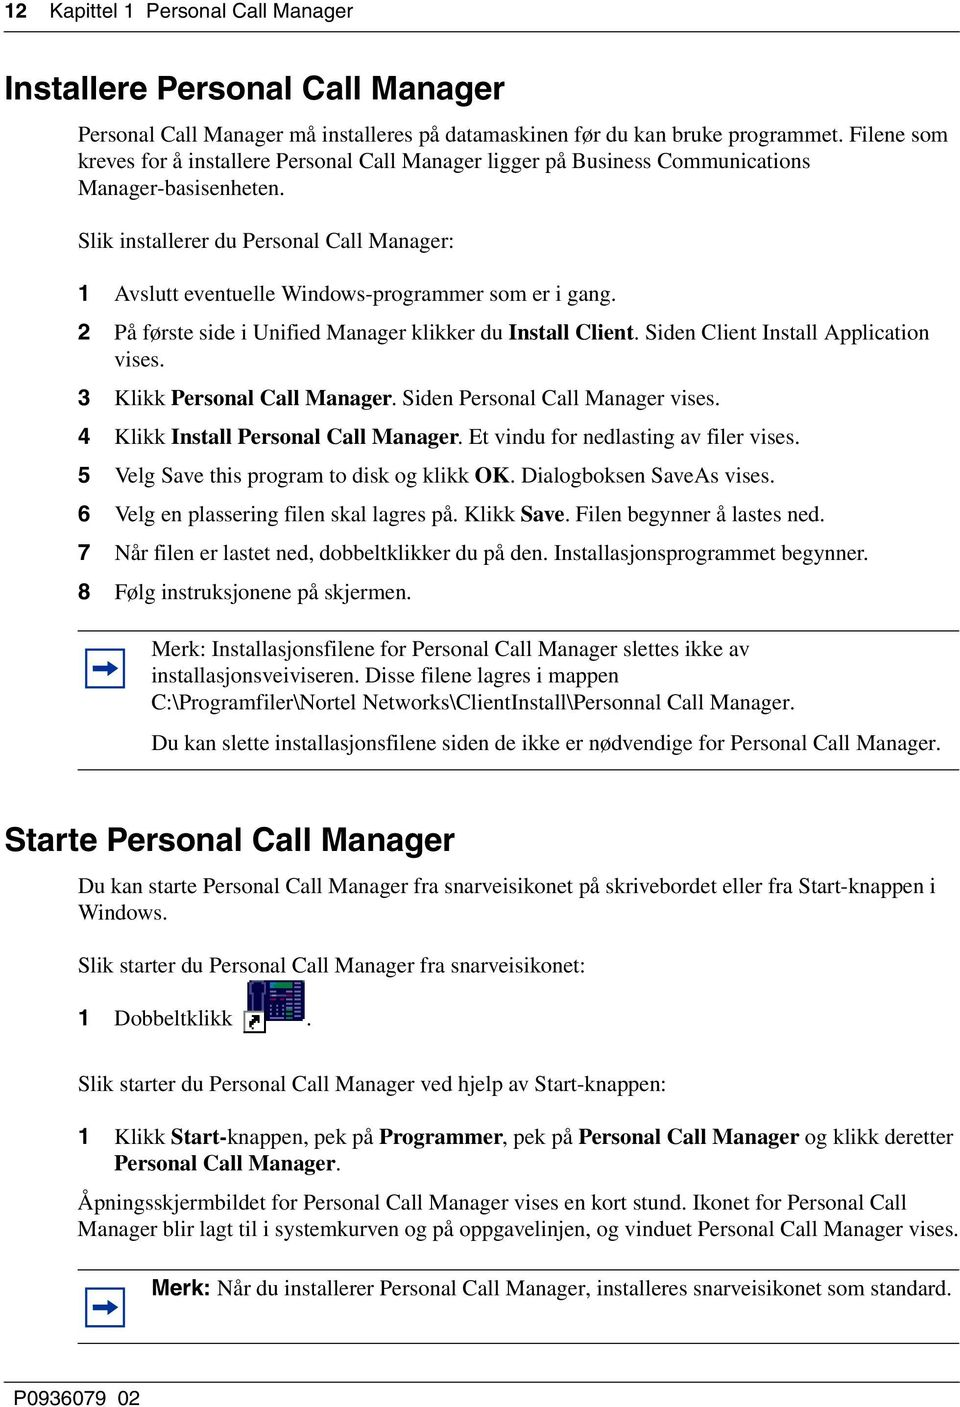 Slik installerer du Personal Call Manager: 1 Avslutt eventuelle Windows-programmer som er i gang. 2 På første side i Unified Manager klikker du Install Client. Siden Client Install Application vises.